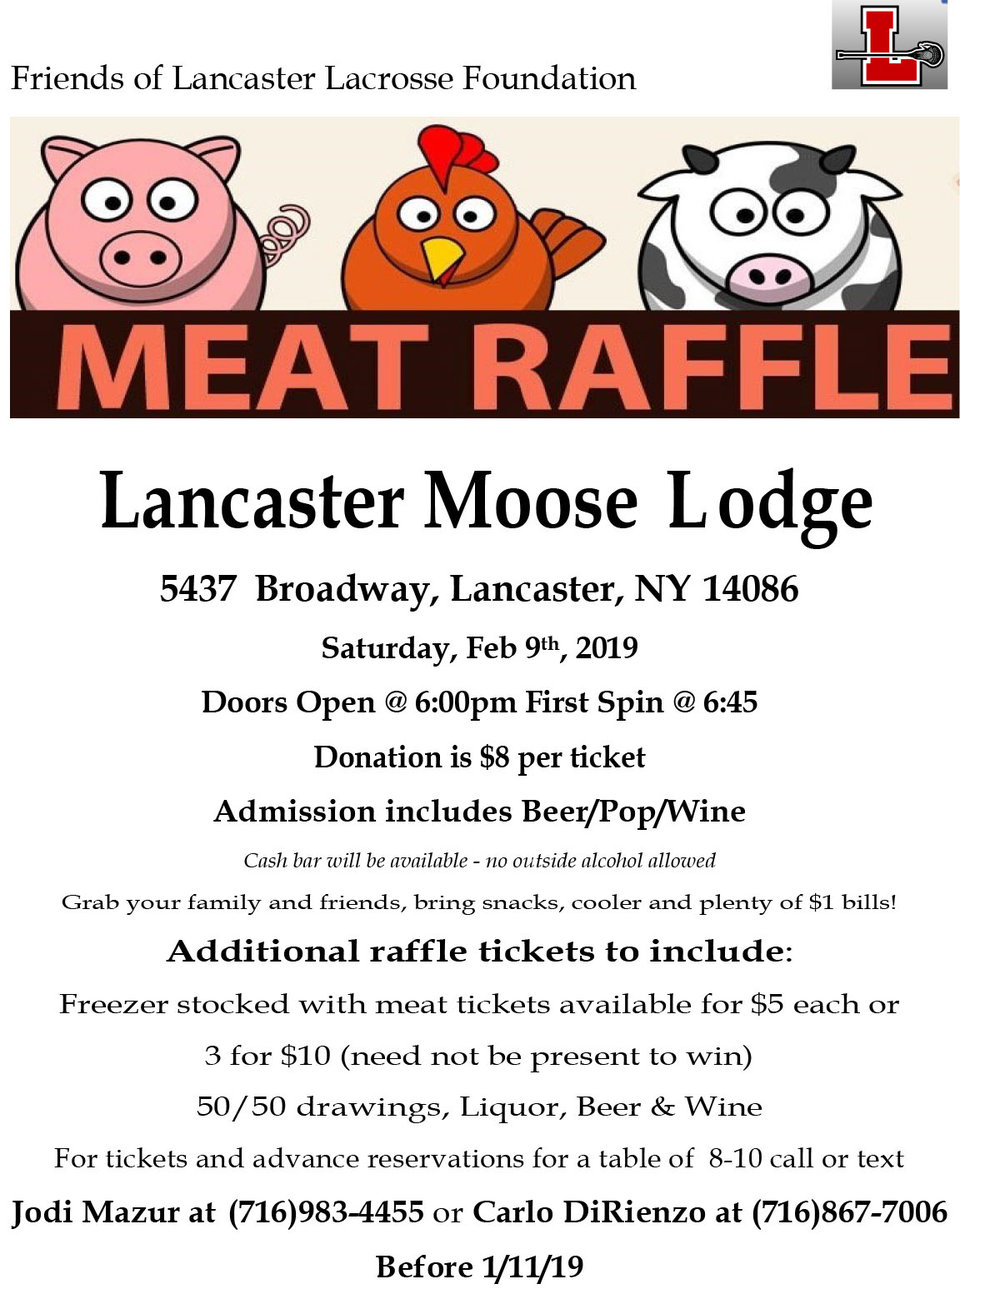 2019 Meat Raffle Flyer LLF   (1).jpg